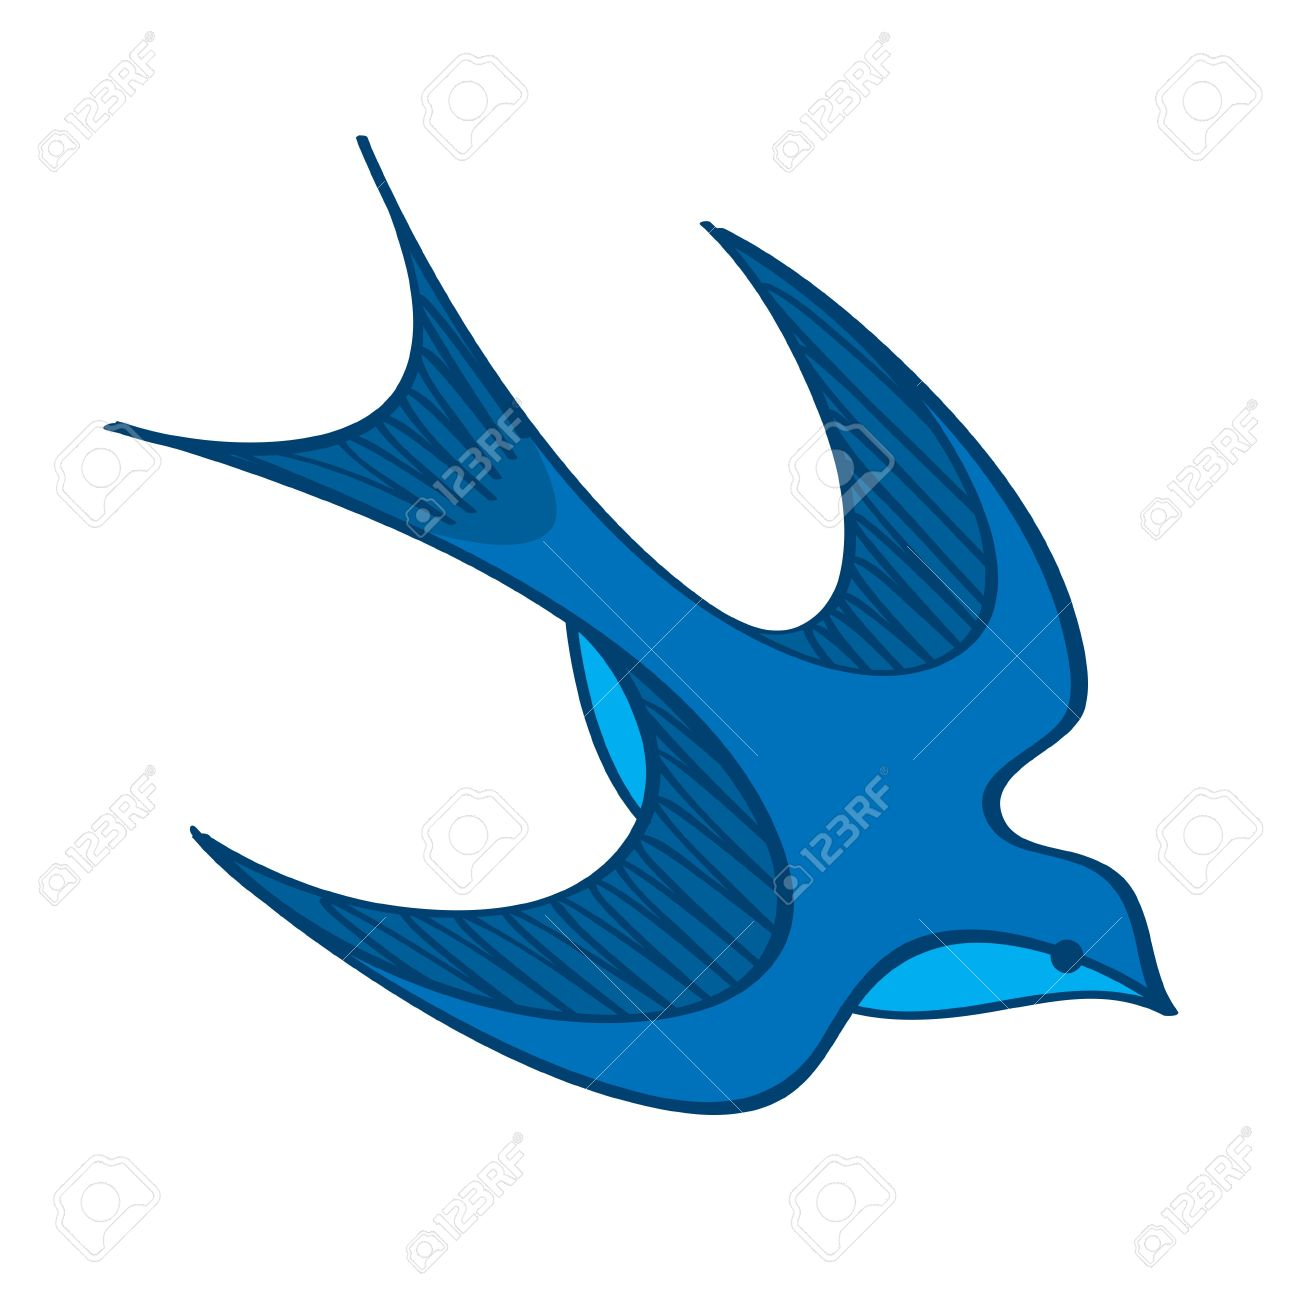 Barn Swallow clipart #4, Download drawings